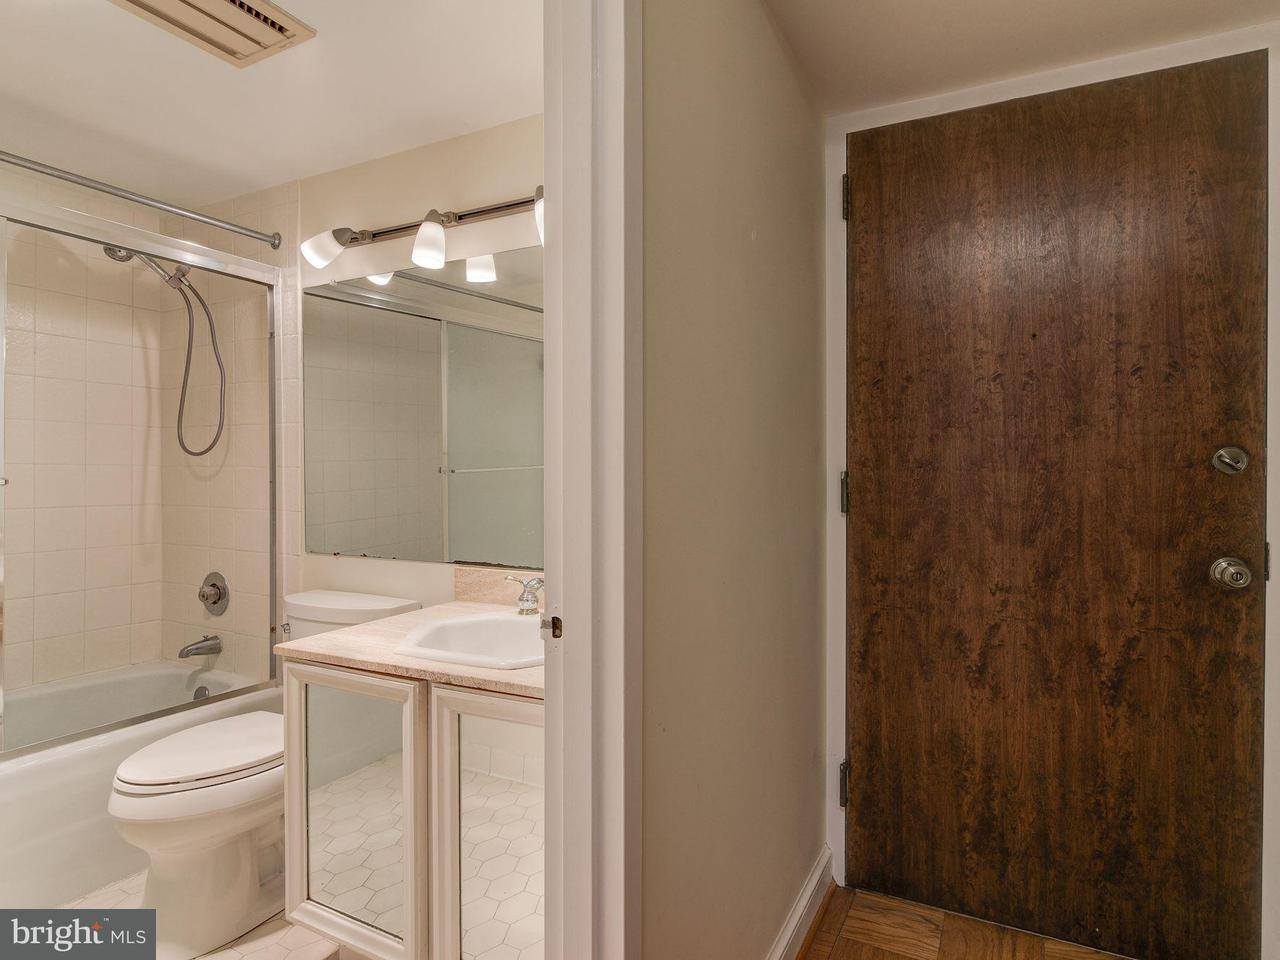 Additional photo for property listing at 3101 New Mexico Ave NW #555  Washington, District Of Columbia 20016 United States